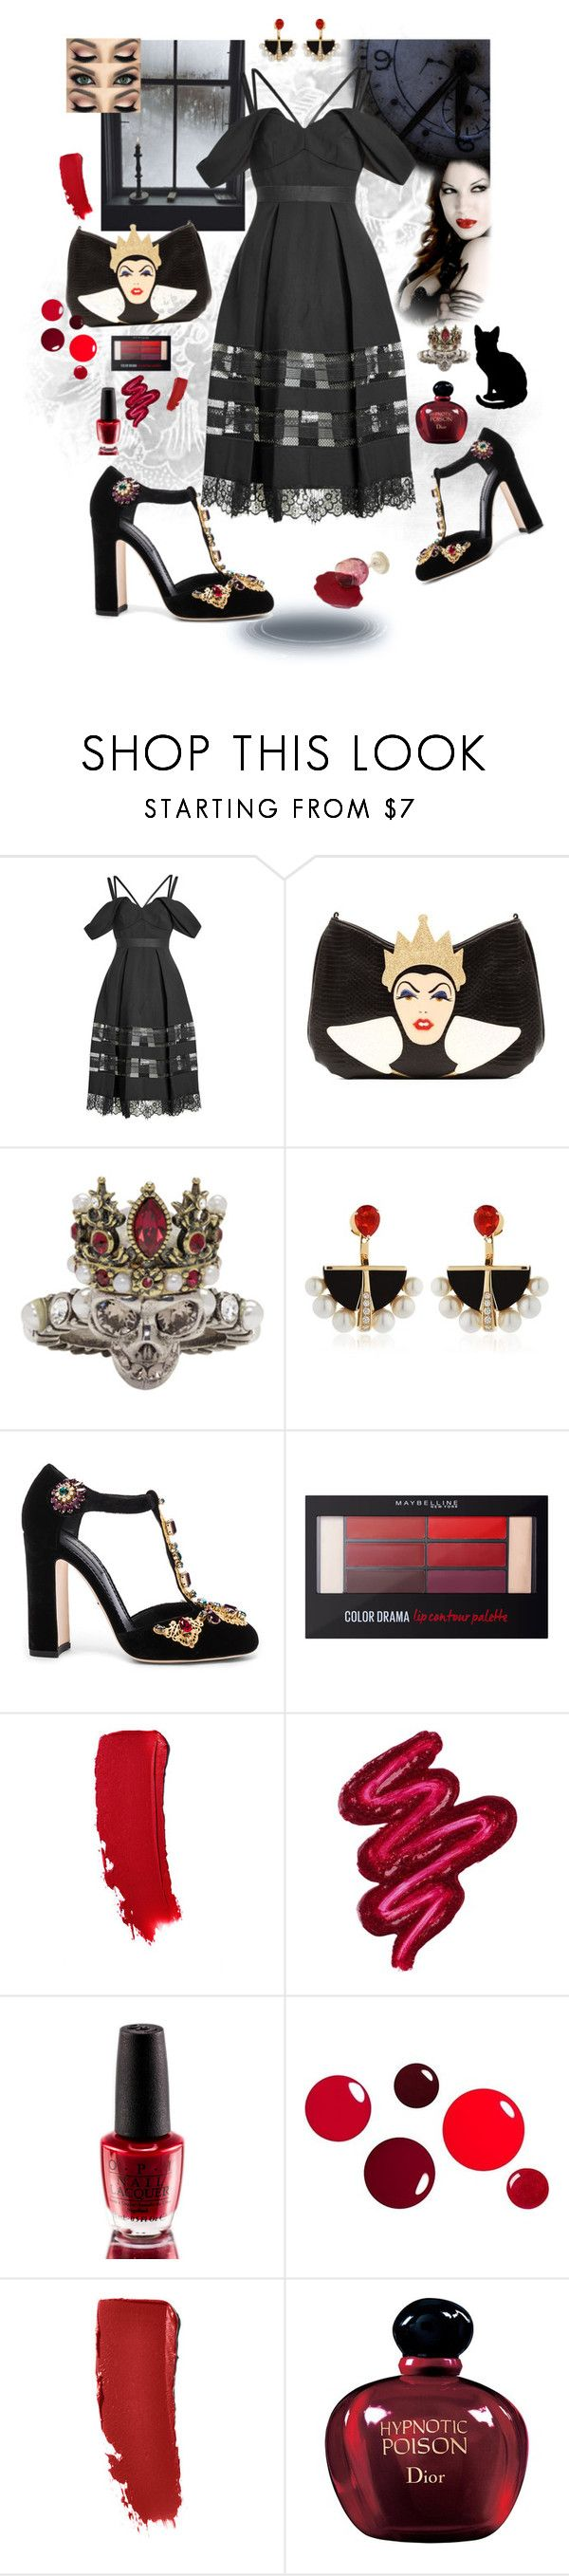 """Black Magic Biatch"" by ohnoflo on Polyvore featuring self-portrait, Danielle Nicole, Alexander McQueen, Lalique, Dolce&Gabbana, Maybelline, Obsessive Compulsive Cosmetics, OPI and Christian Dior"